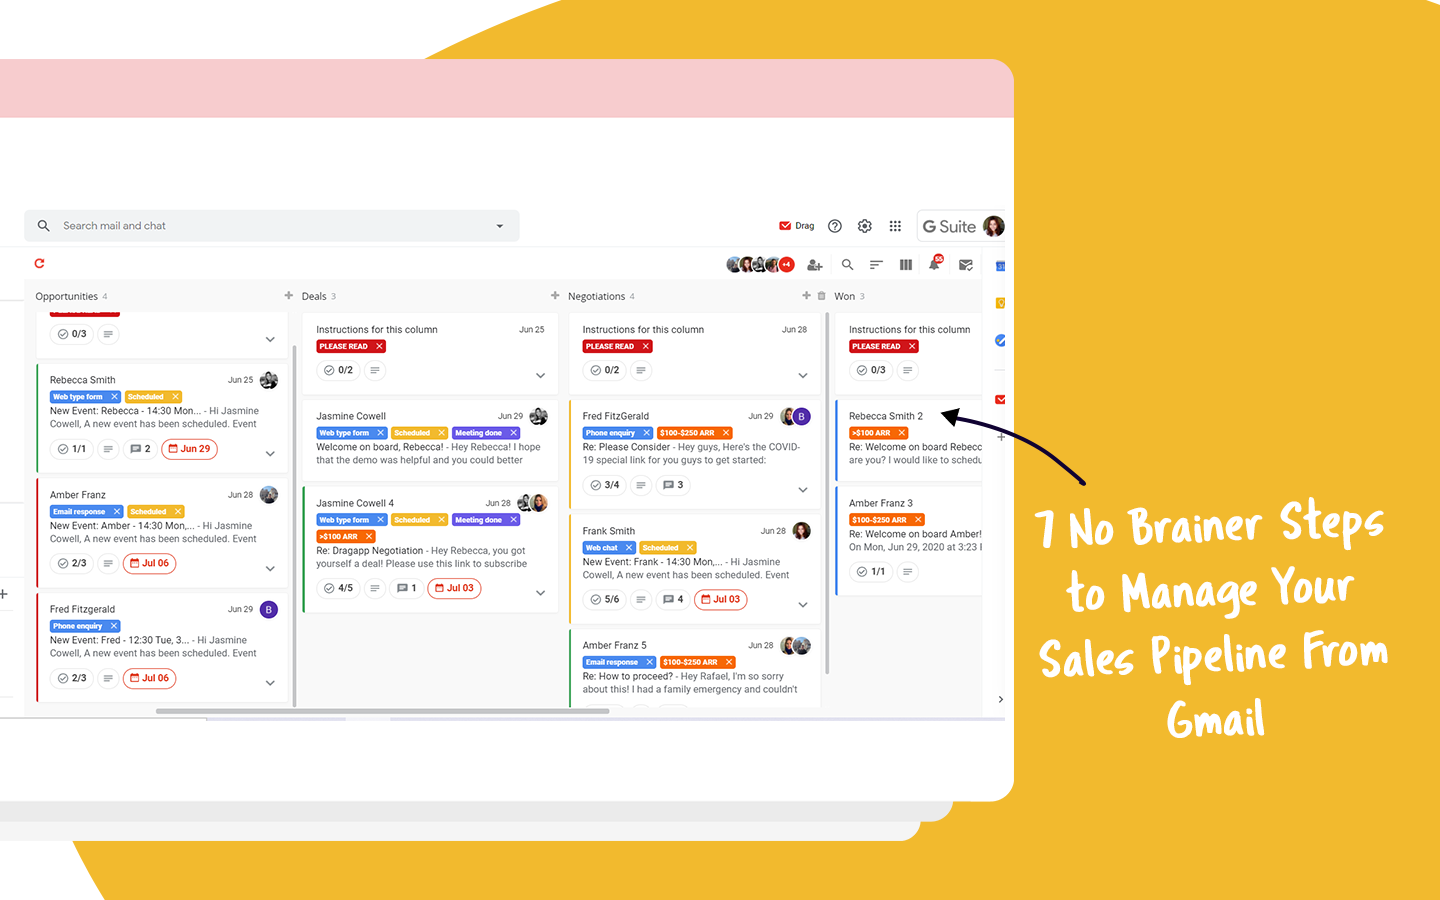 manage sales pipeline